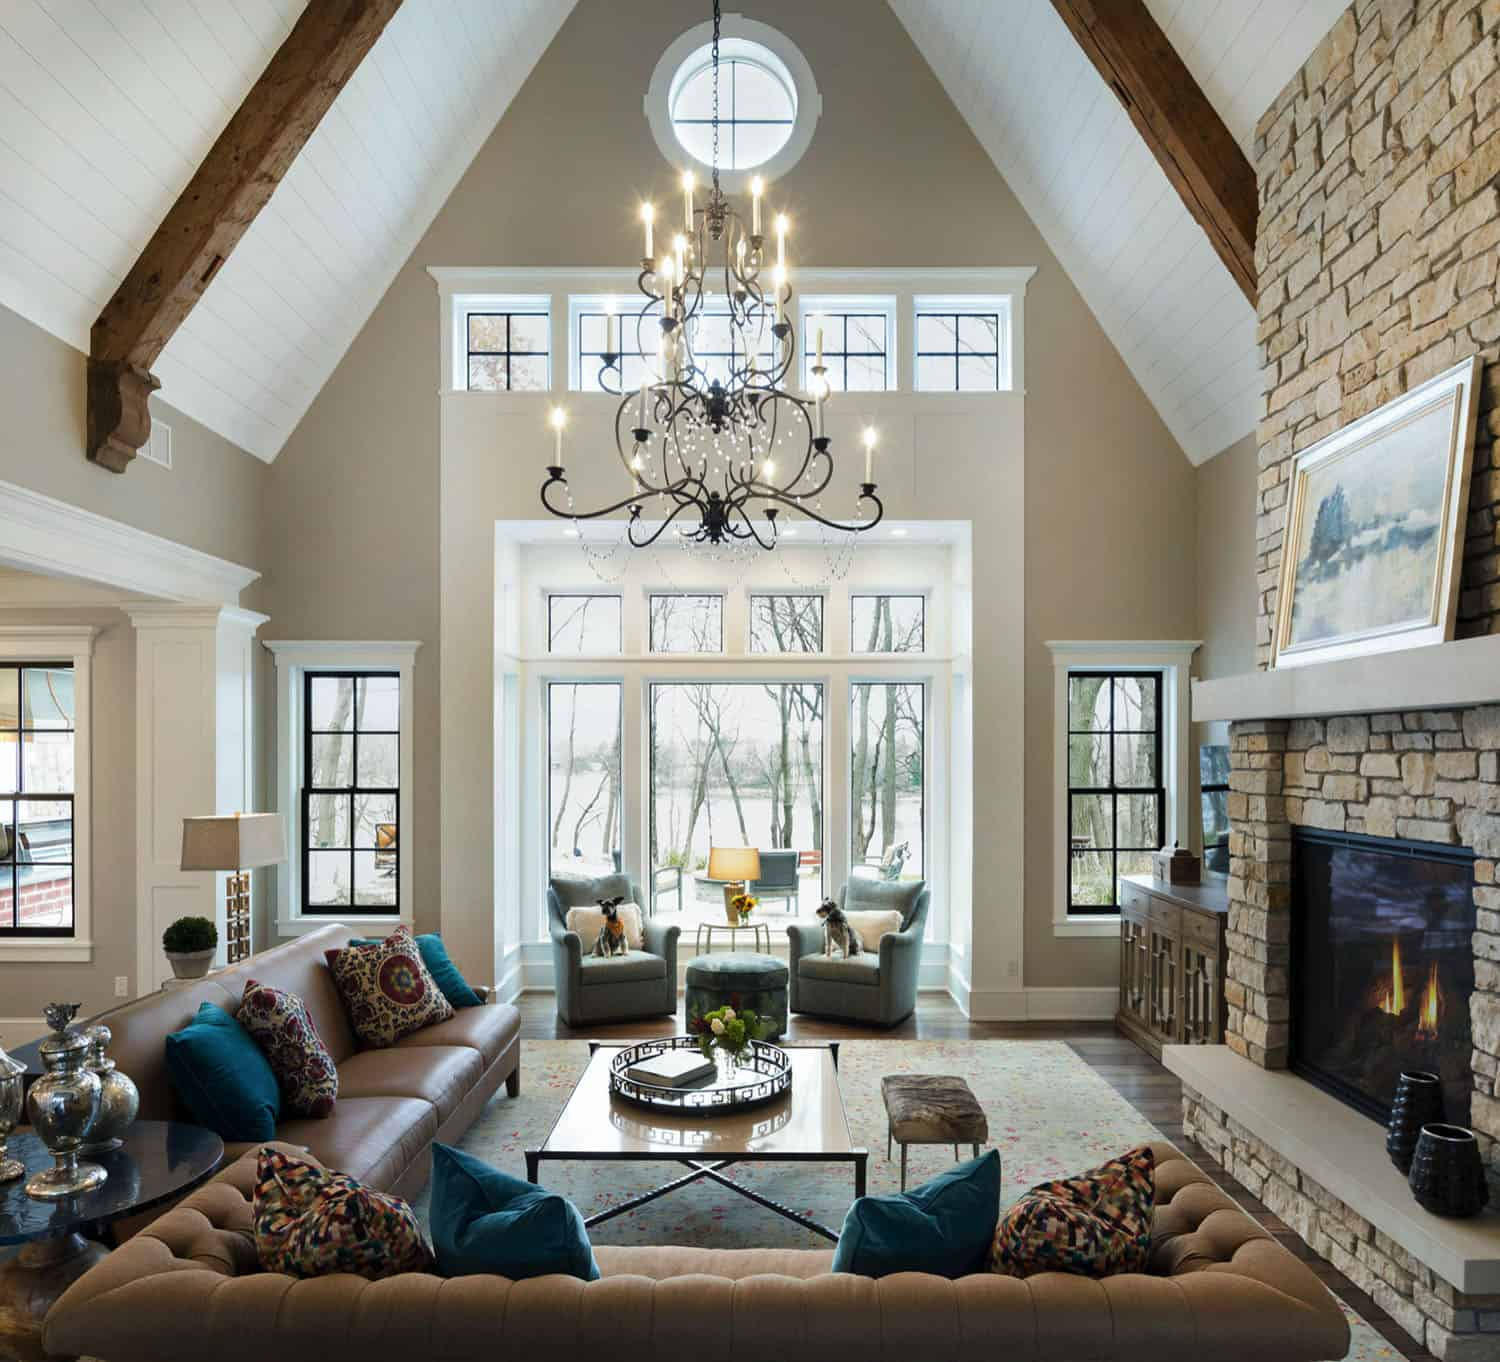 Inviting lakeside home in Minnesota with sophisticated interior styling